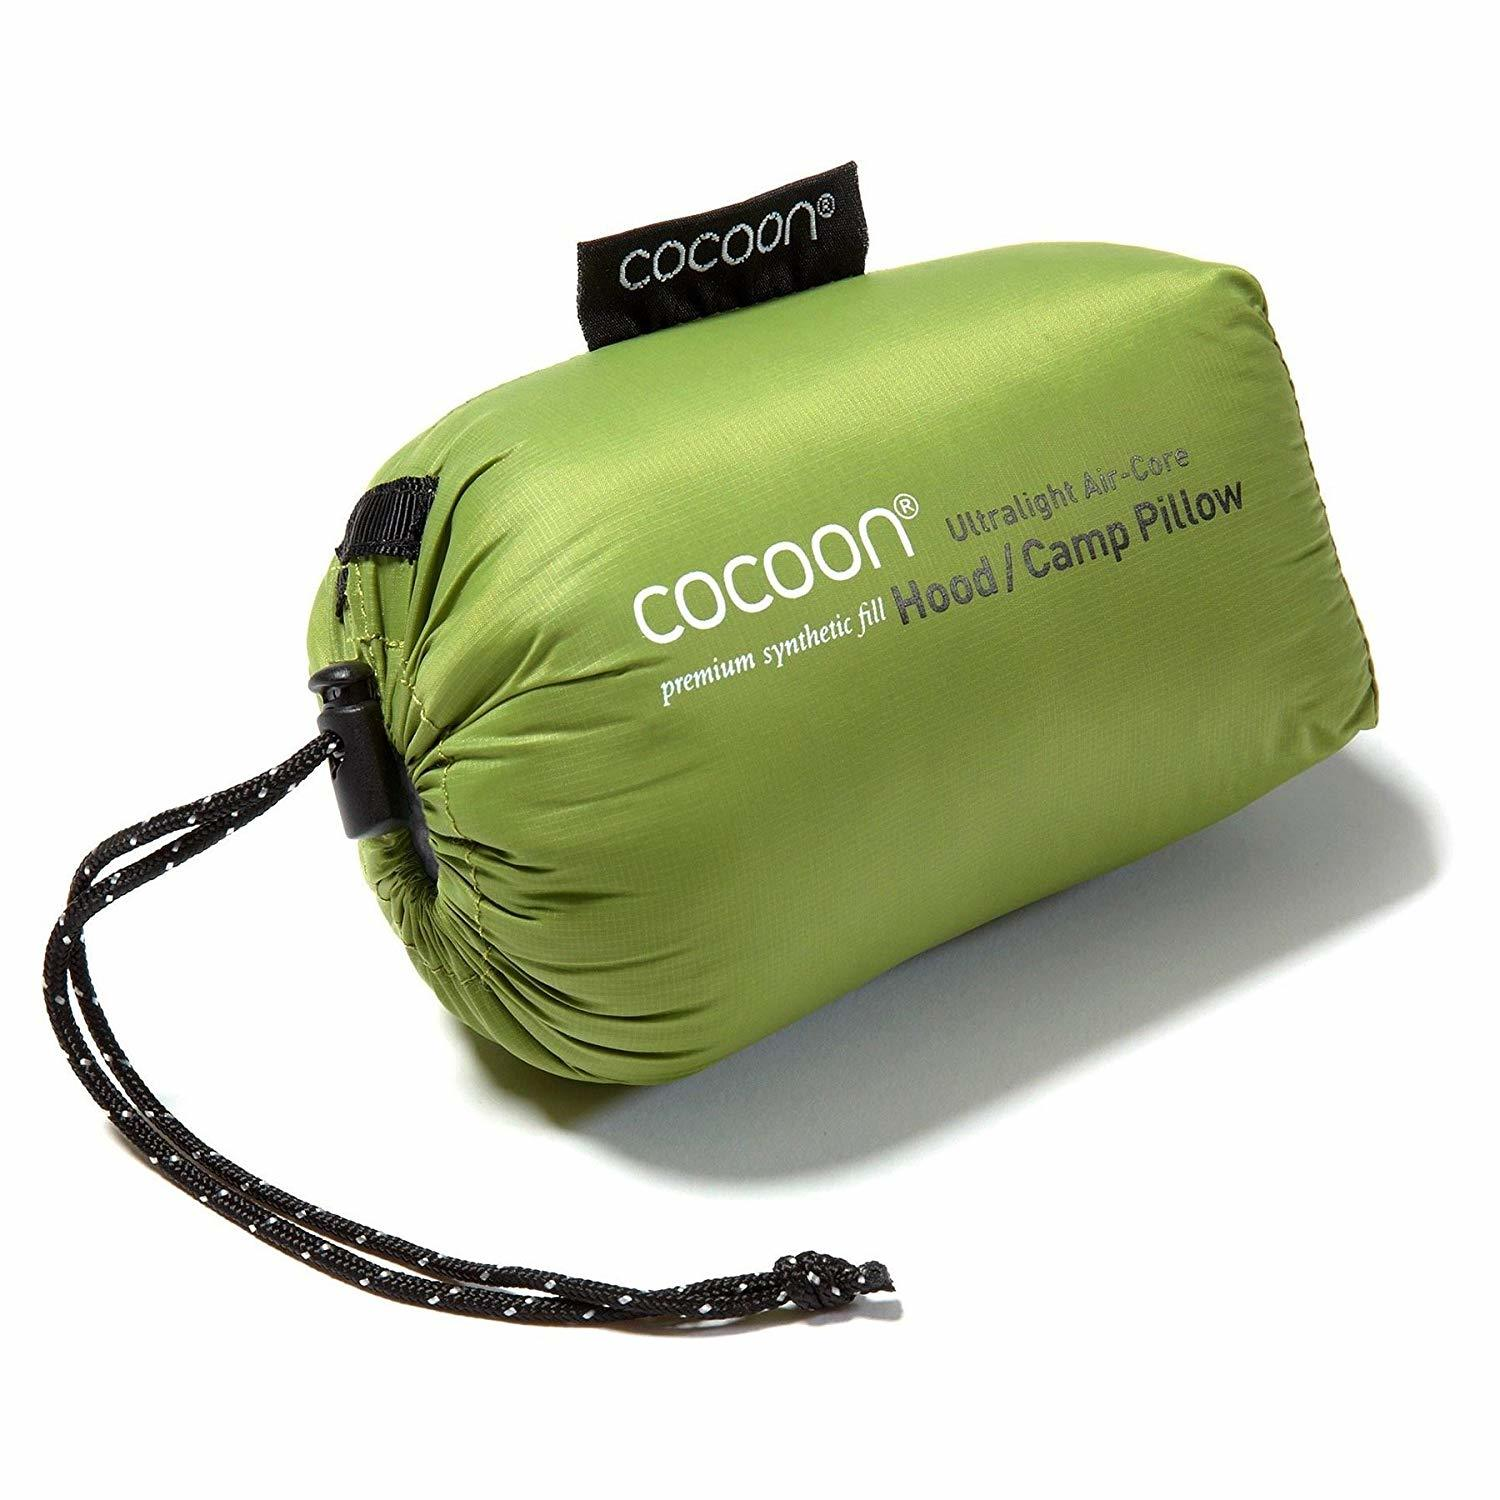 Cocoon Ultralight Air-core Travel Pillow